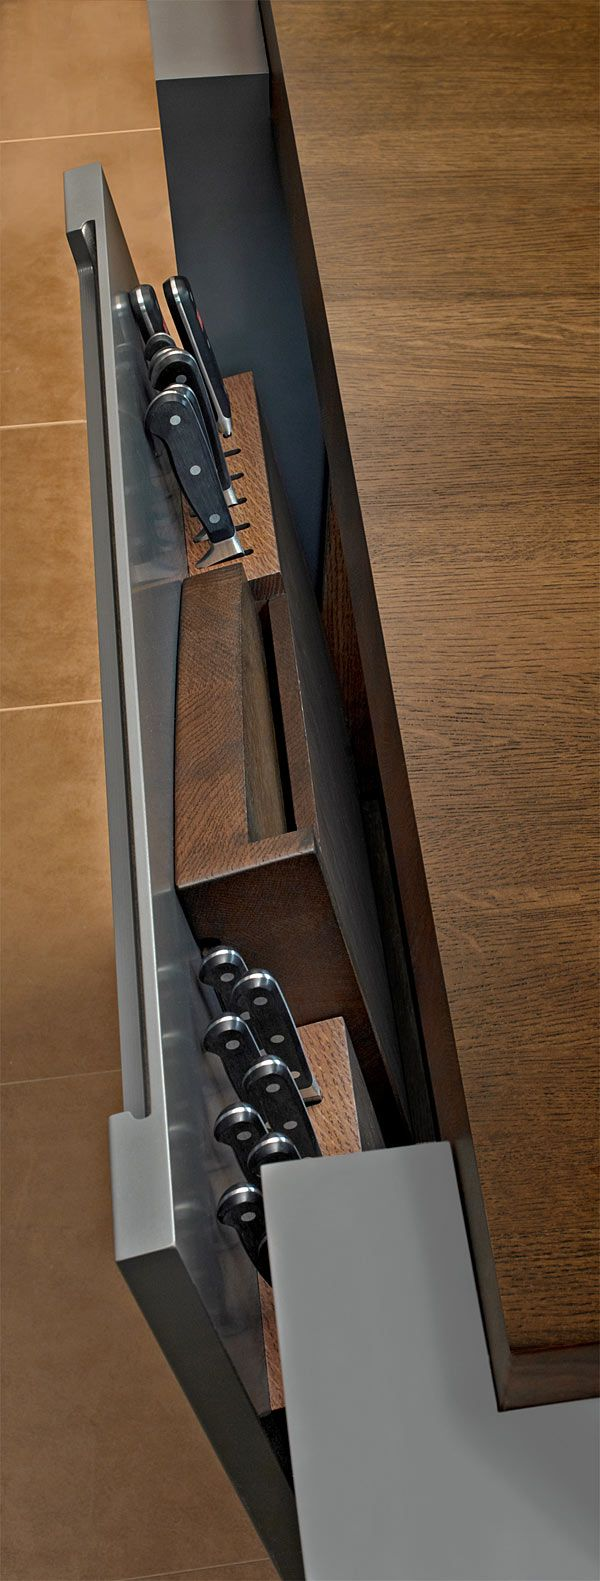 Kitchen Knife Storage 17 Best Ideas About Contemporary Knife Blocks On Pinterest